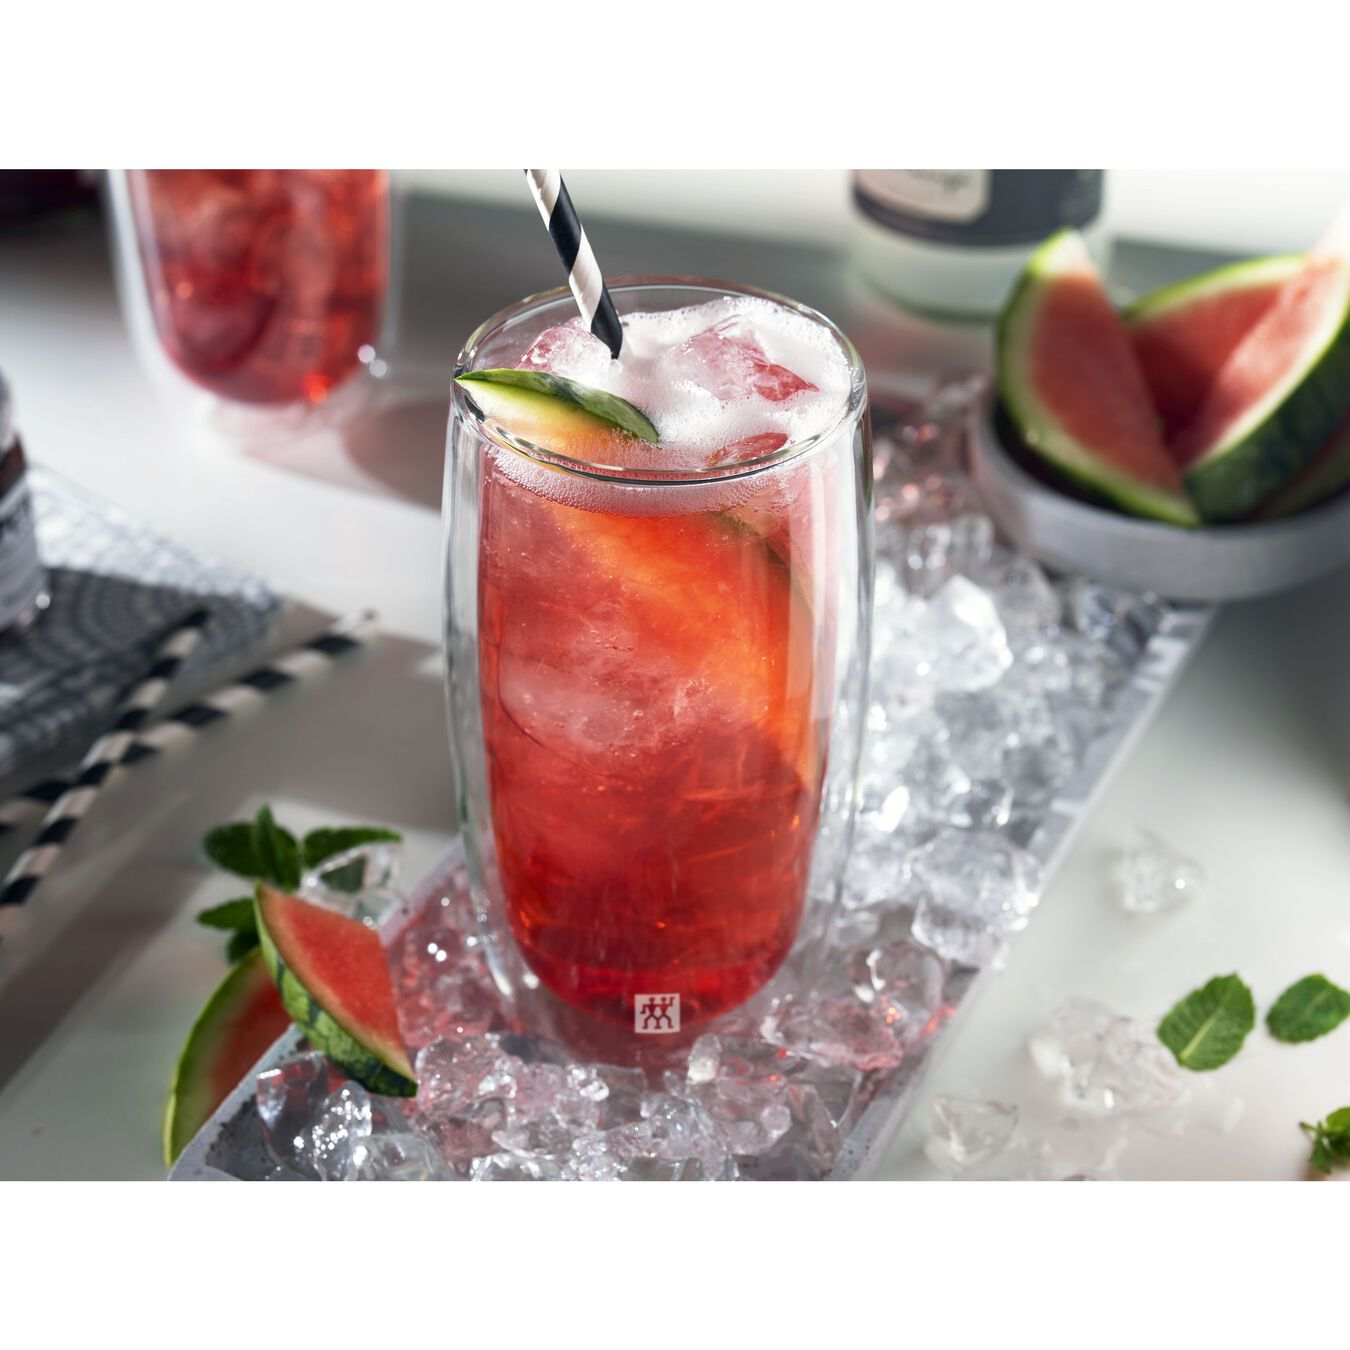 2 Piece Double-Wall Beverage Glass Set,,large 2